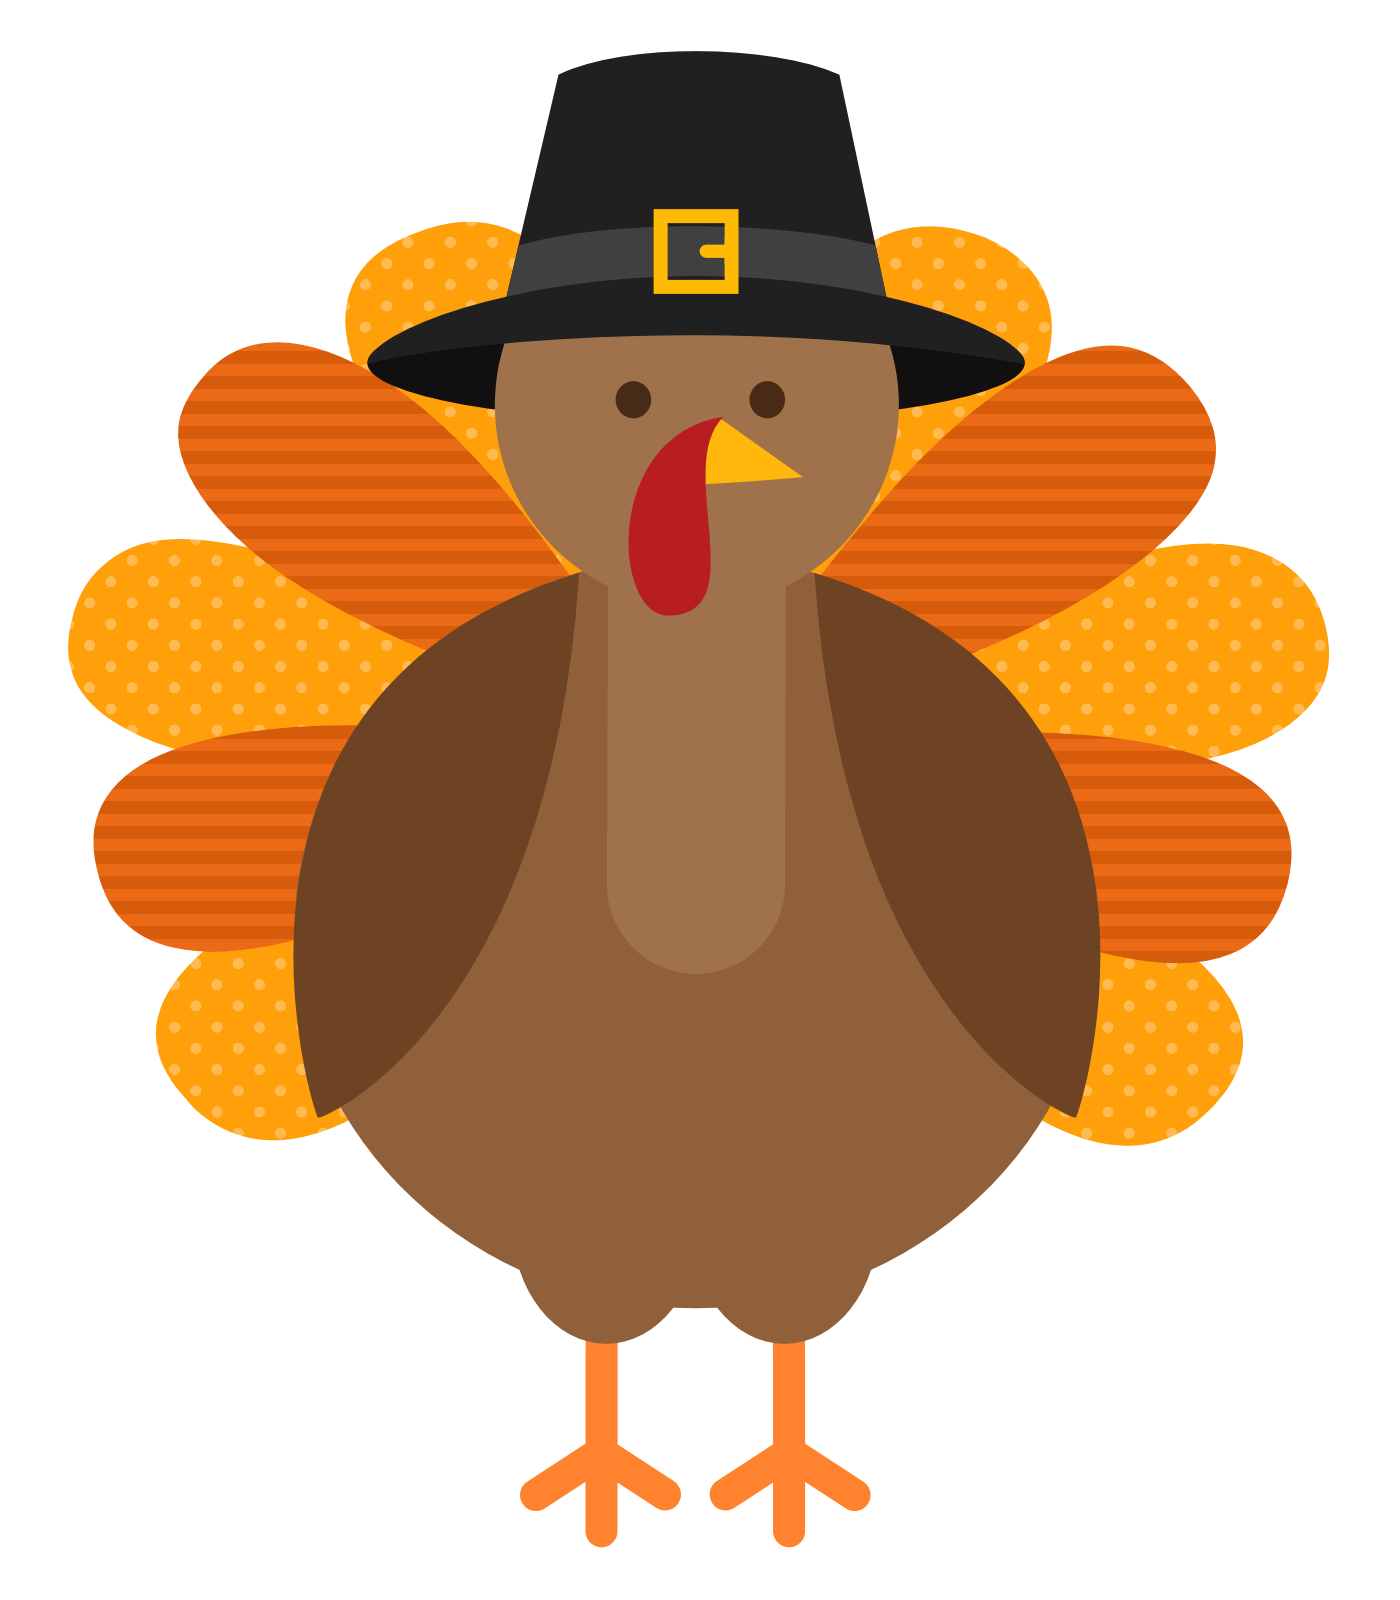 Thanksgiving clipart png. Collection of free